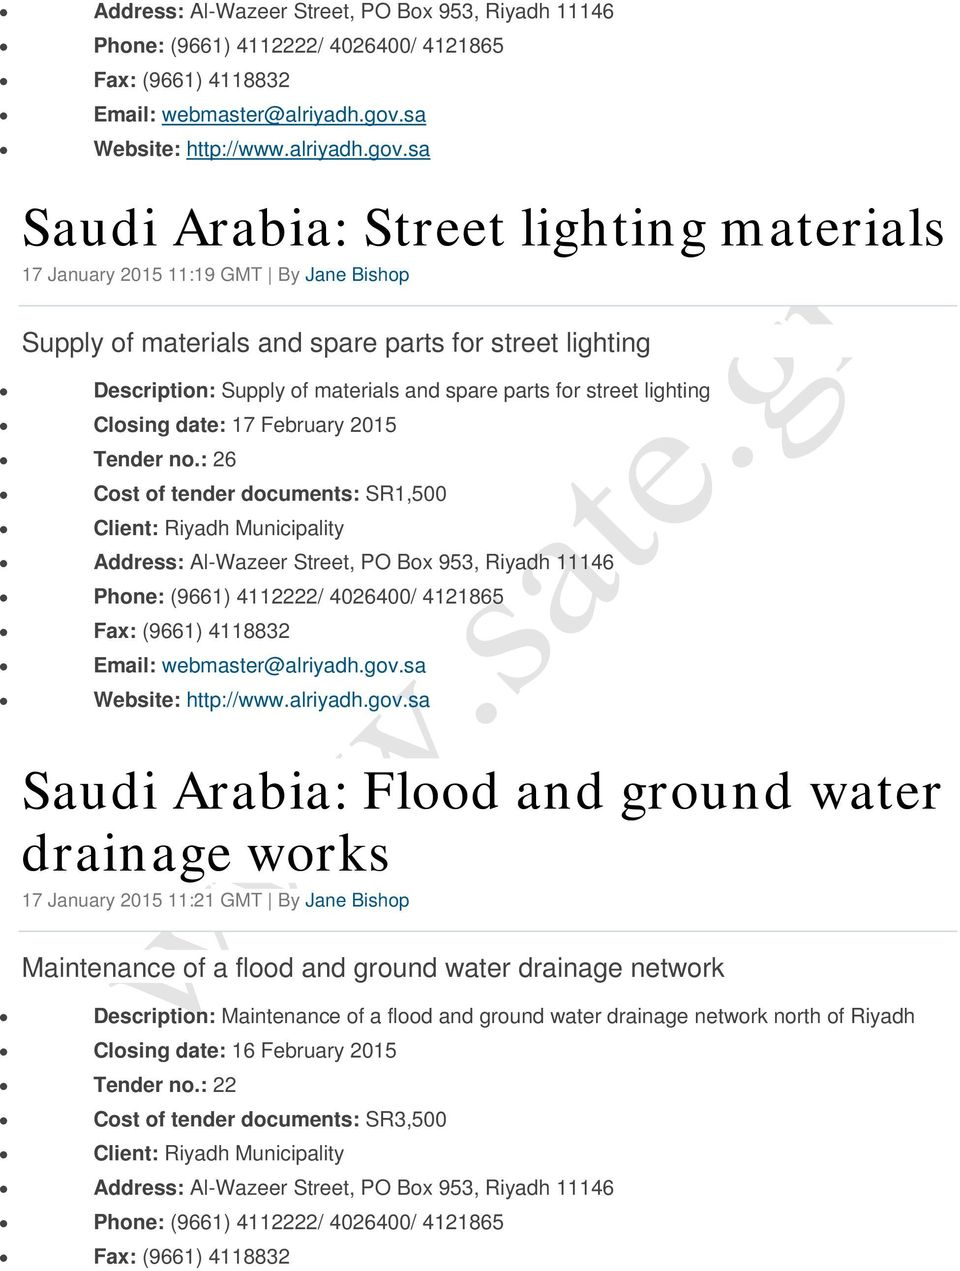 : 26 Cost of tender documents: SR1,500 Saudi Arabia: Flood and ground water drainage works 17 January 2015 11:21 GMT By Jane Bishop